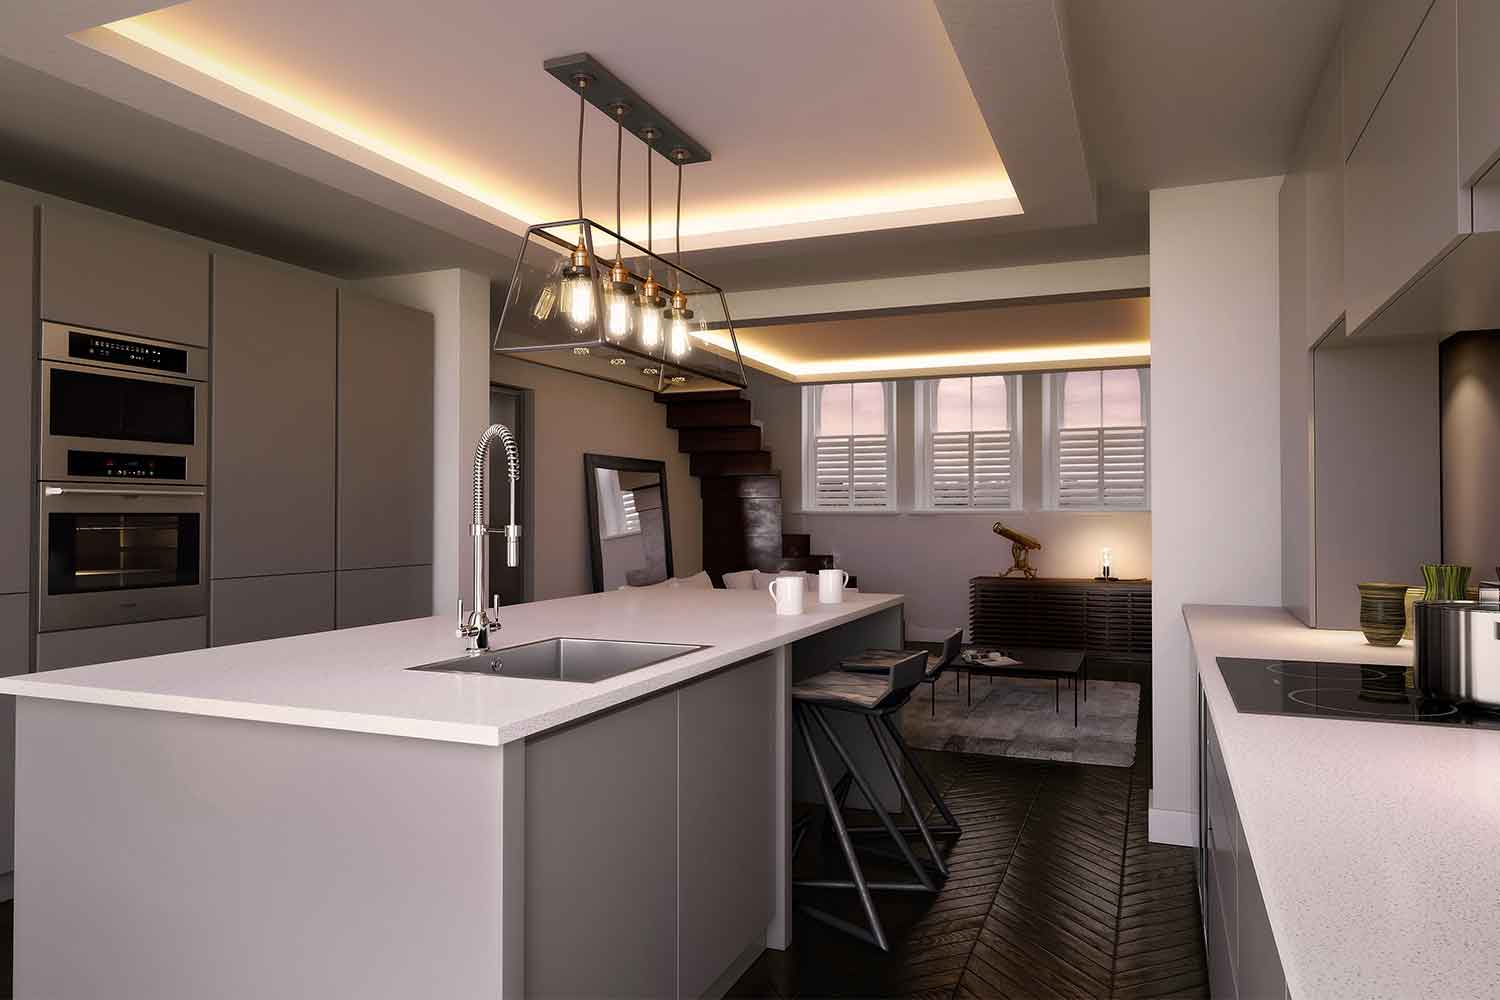 CGI Creation 3D Architectural Renderings